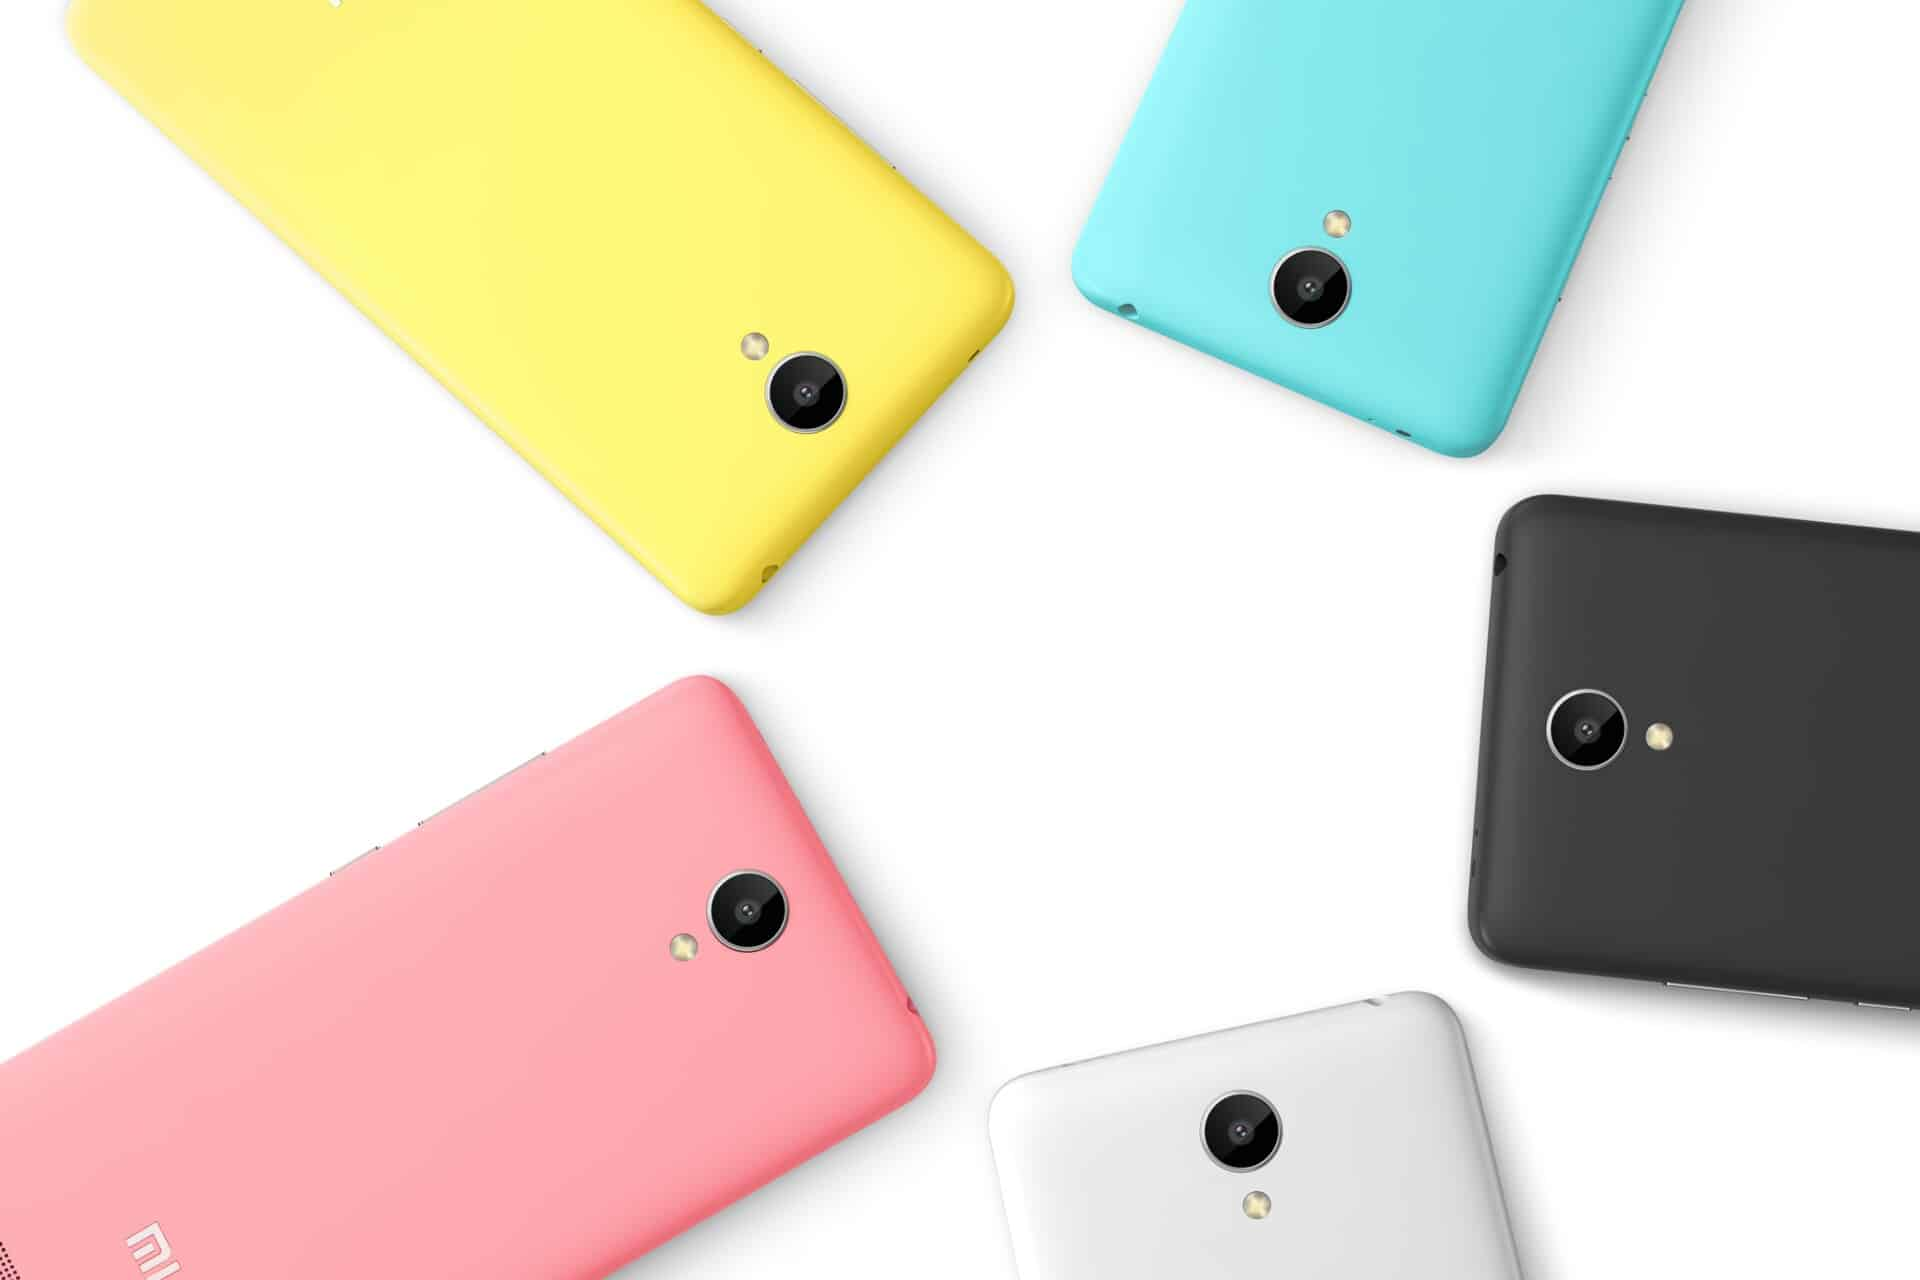 Xiaomi Redmi Note 2 Is Now Available In 5 Color Options